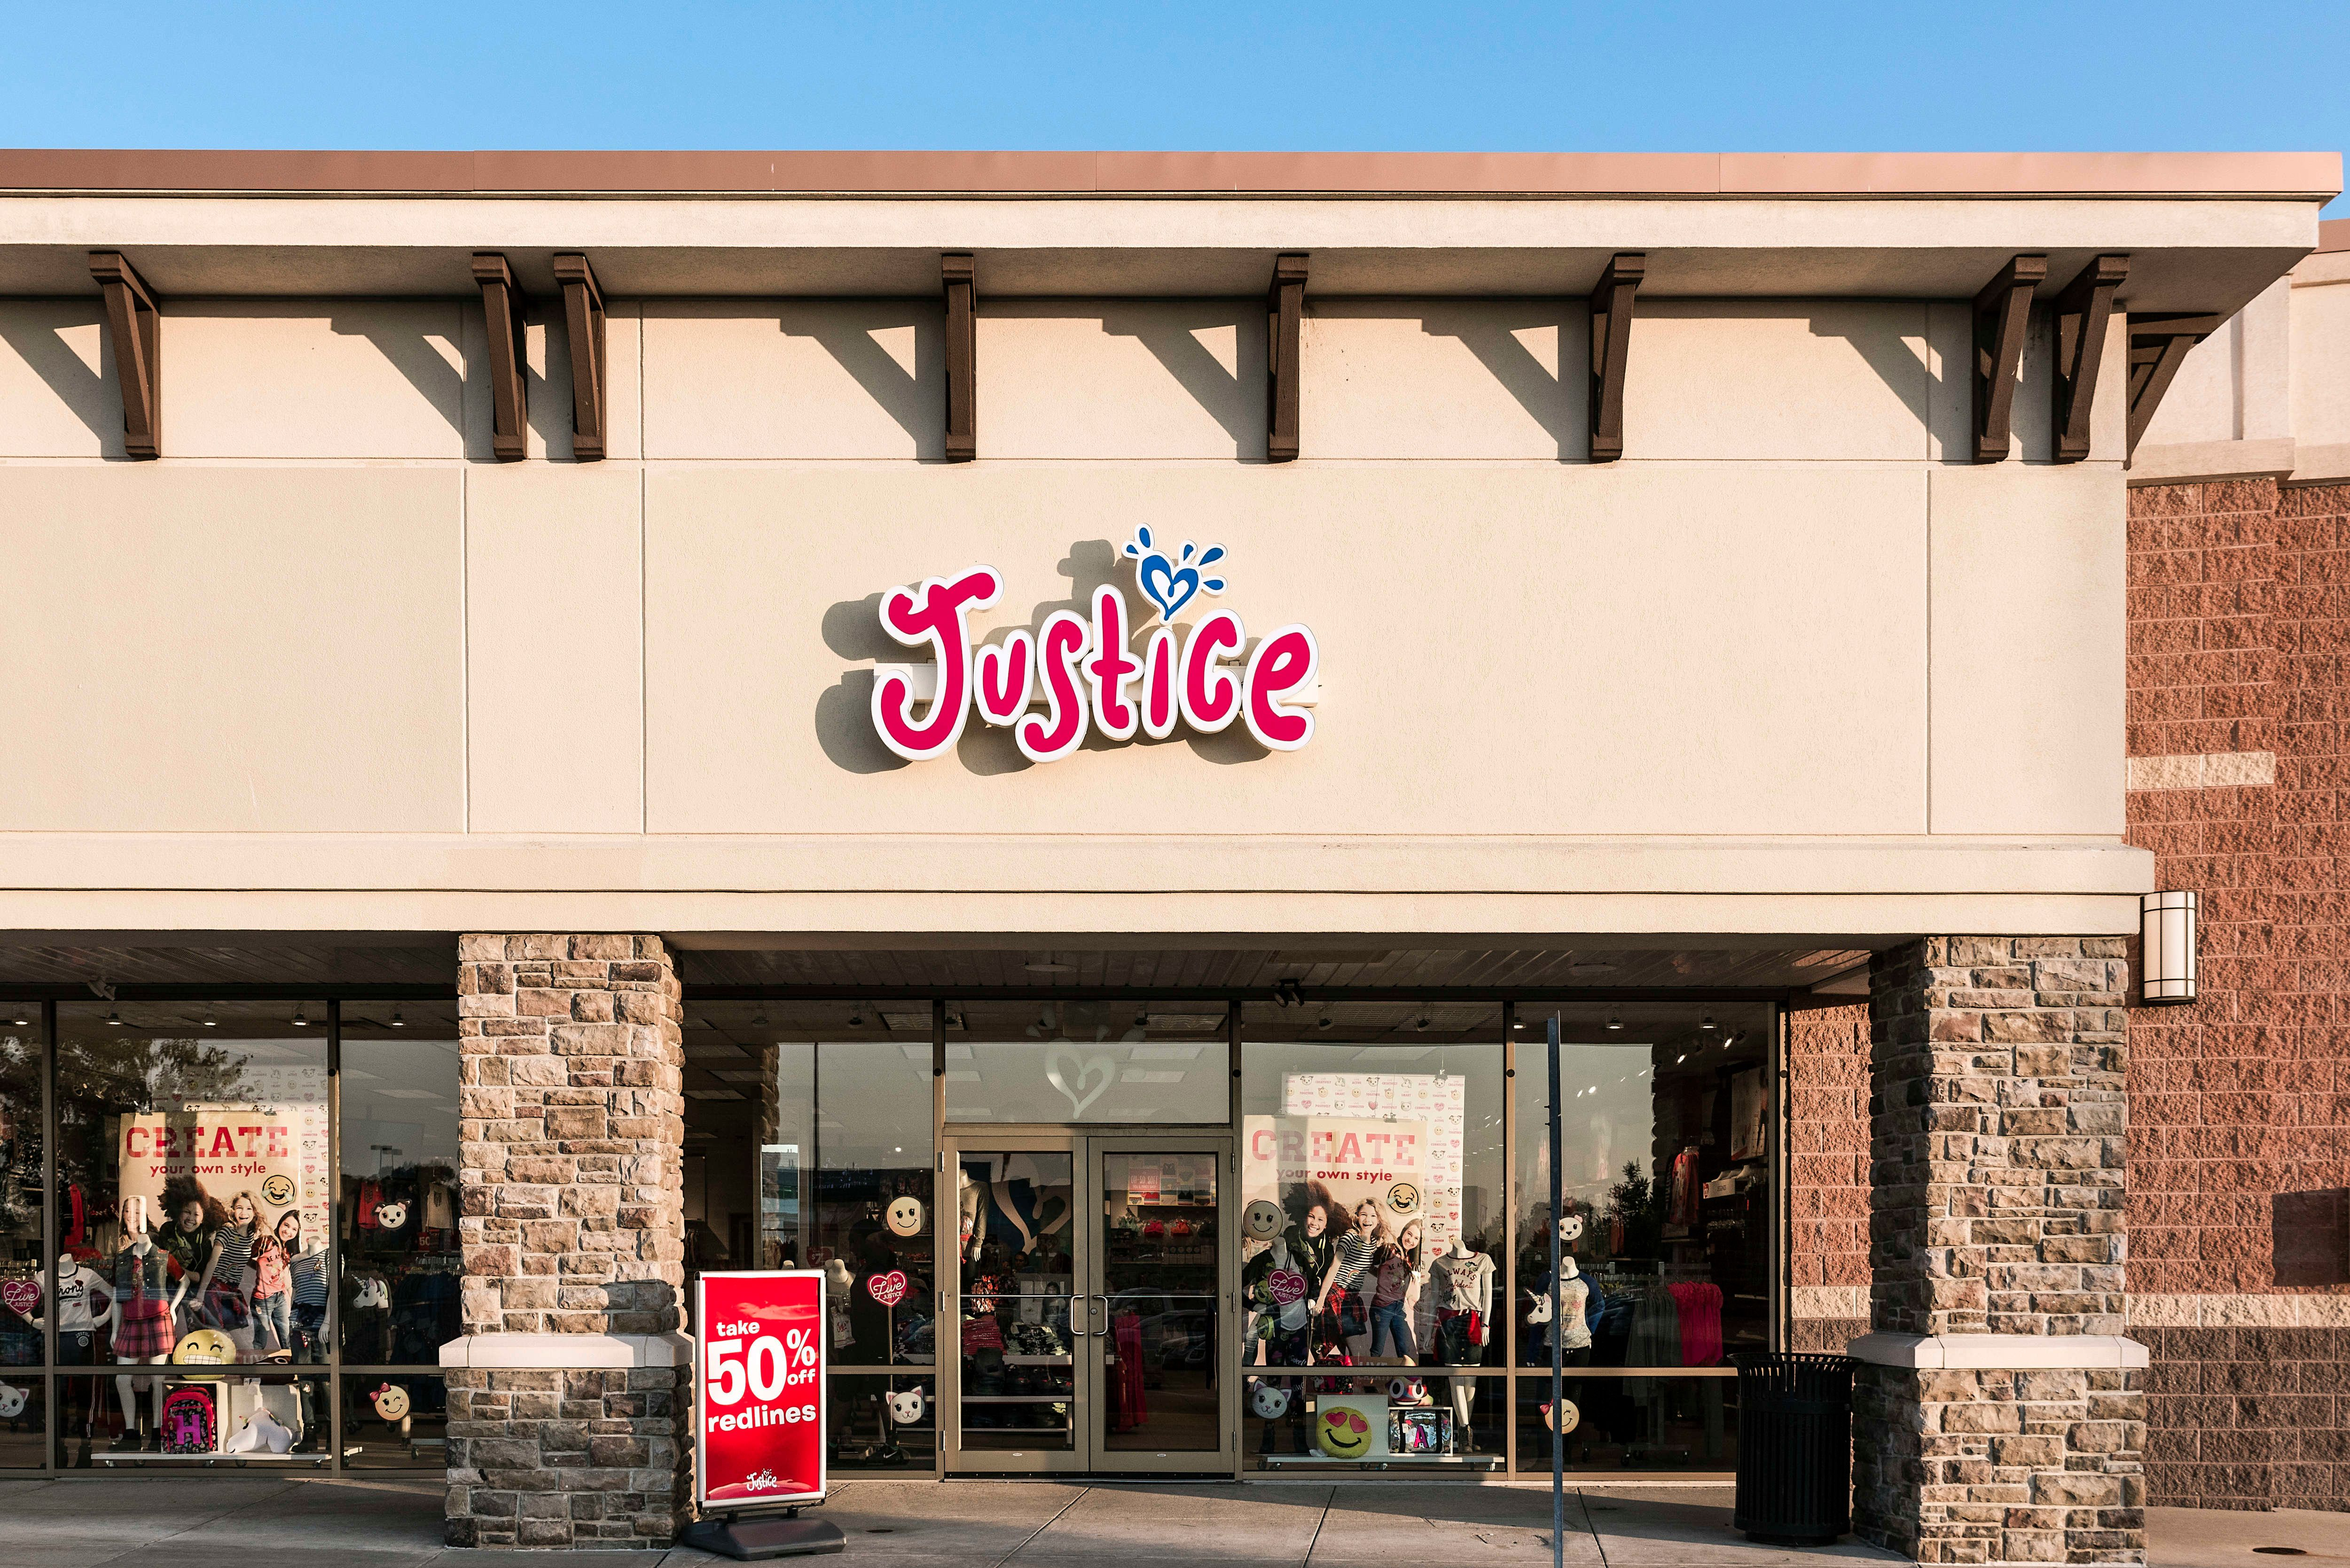 Justice is a tween specialty retailer with over 900 locations around the world.